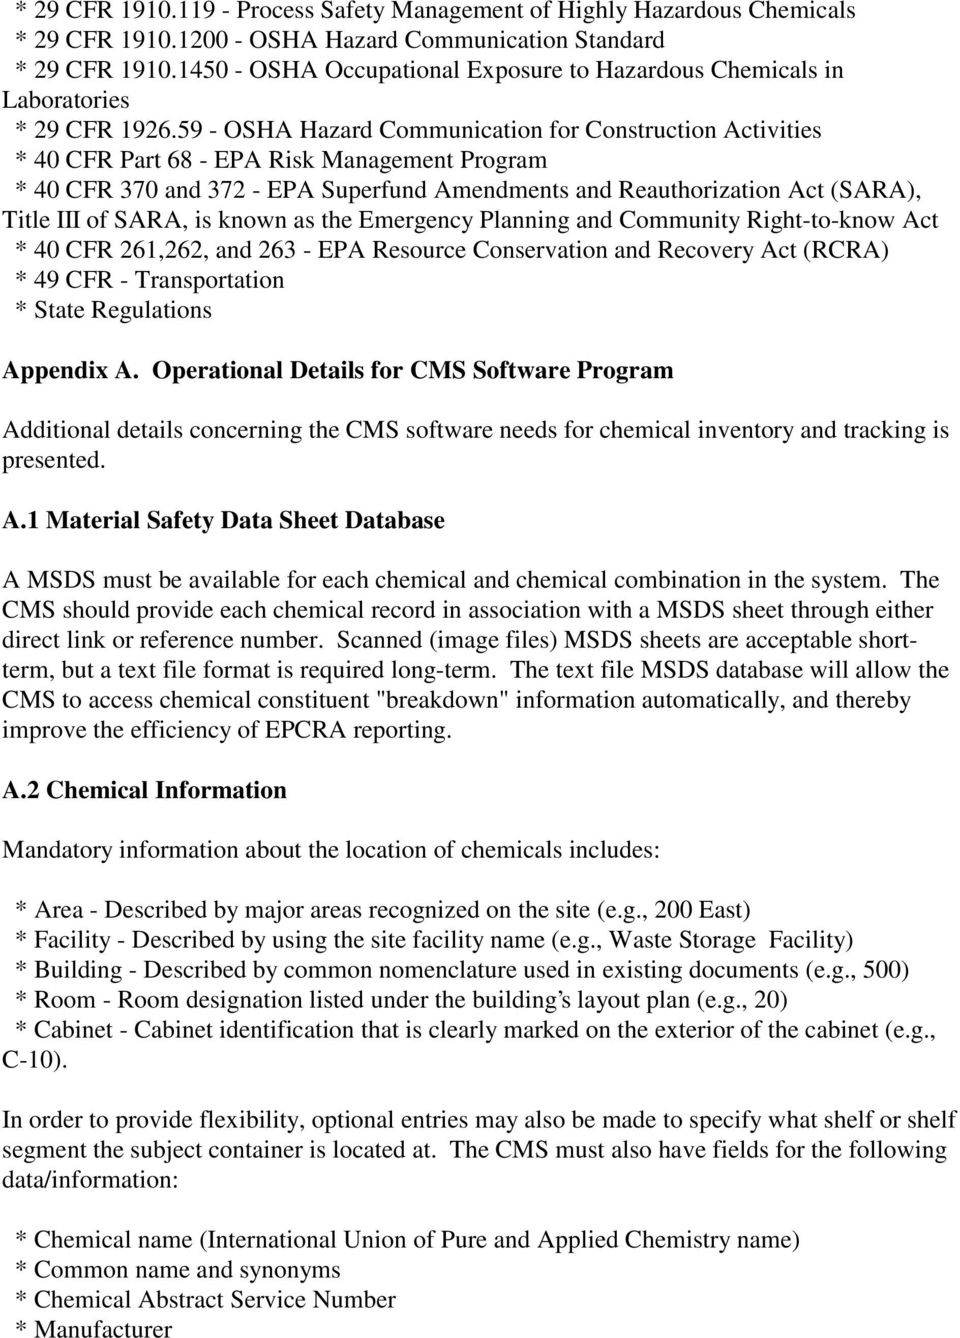 59 - OSHA Hazard Communication for Construction Activities * 40 CFR Part 68 - EPA Risk Management Program * 40 CFR 370 and 372 - EPA Superfund Amendments and Reauthorization Act (SARA), Title III of